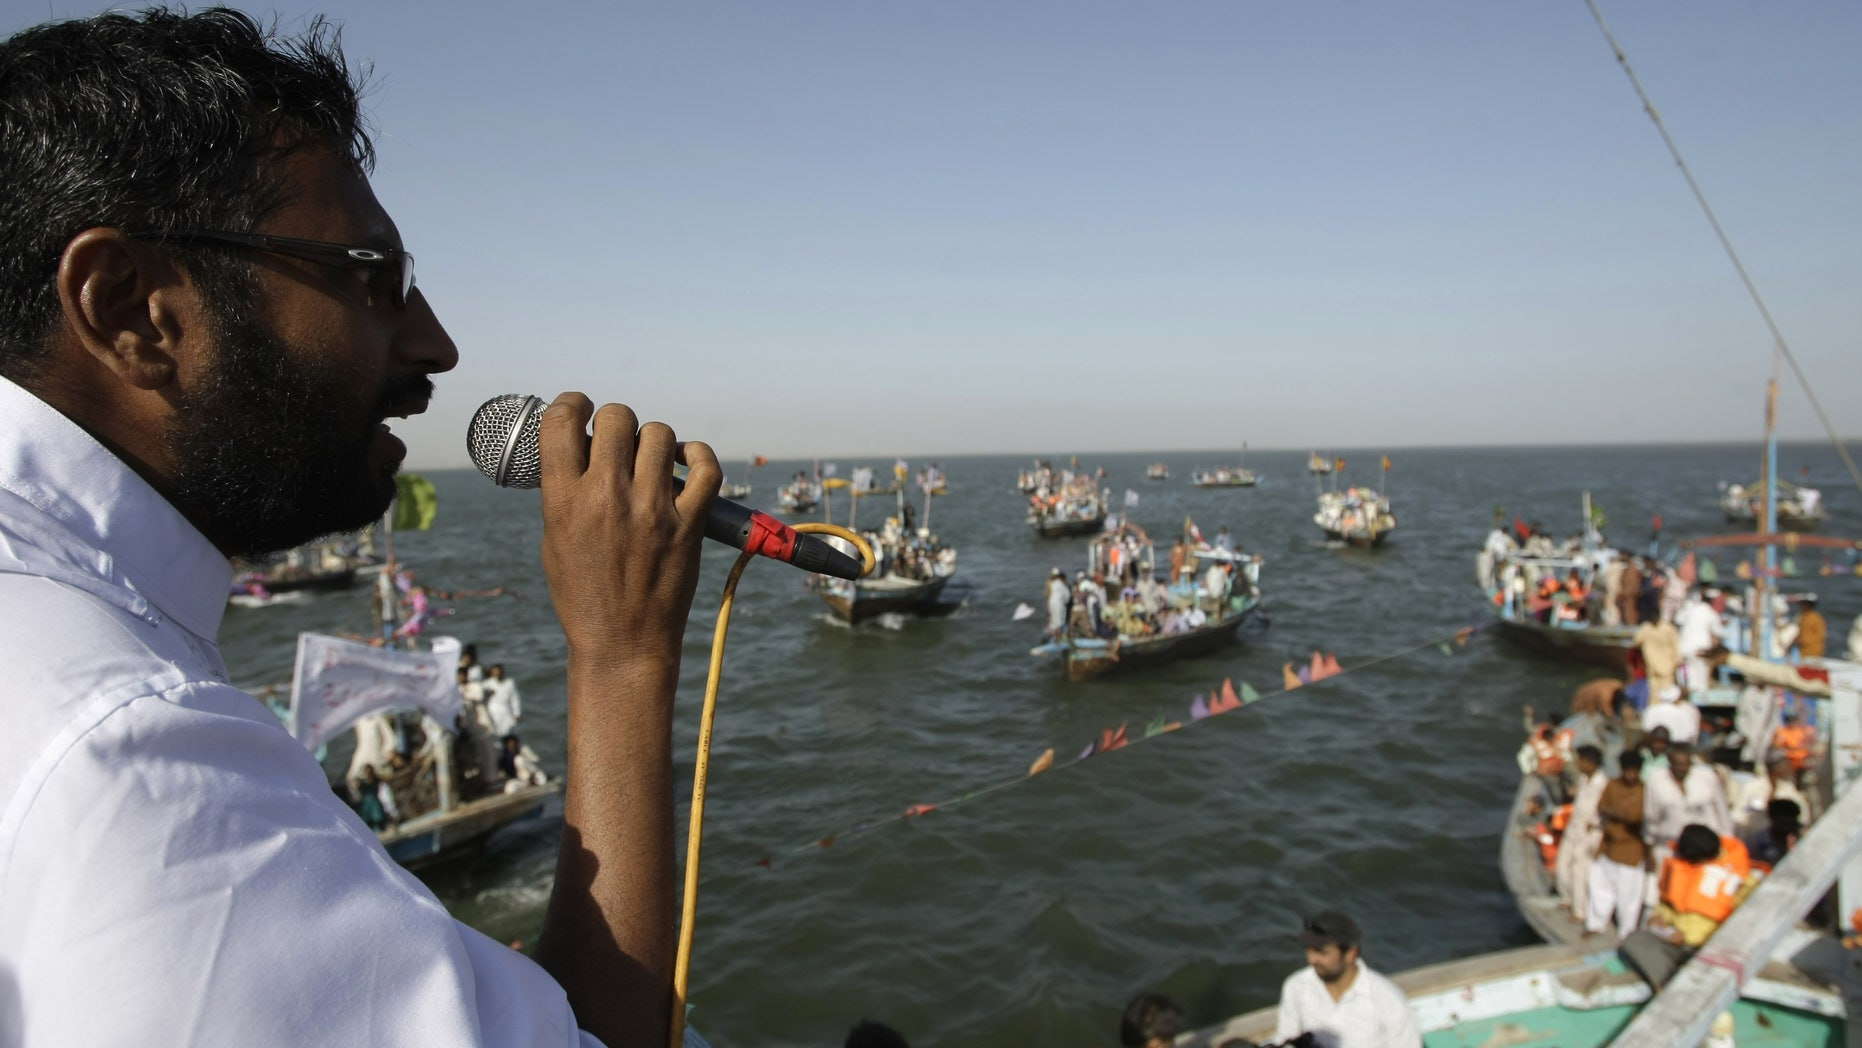 Pakistani election candidate Usman Ghani addresses fishermen living in his constituency during a campaign in the Arabian Sea near the coastal area of Karachi, Pakistan on Friday, May 3, 2013. Pakistan is scheduled to hold parliamentary elections on May 11, the first transition between democratically elected governments in a country that has experienced three military coups and constant political instability since its creation in 1947. (AP Photo/Fareed Khan)